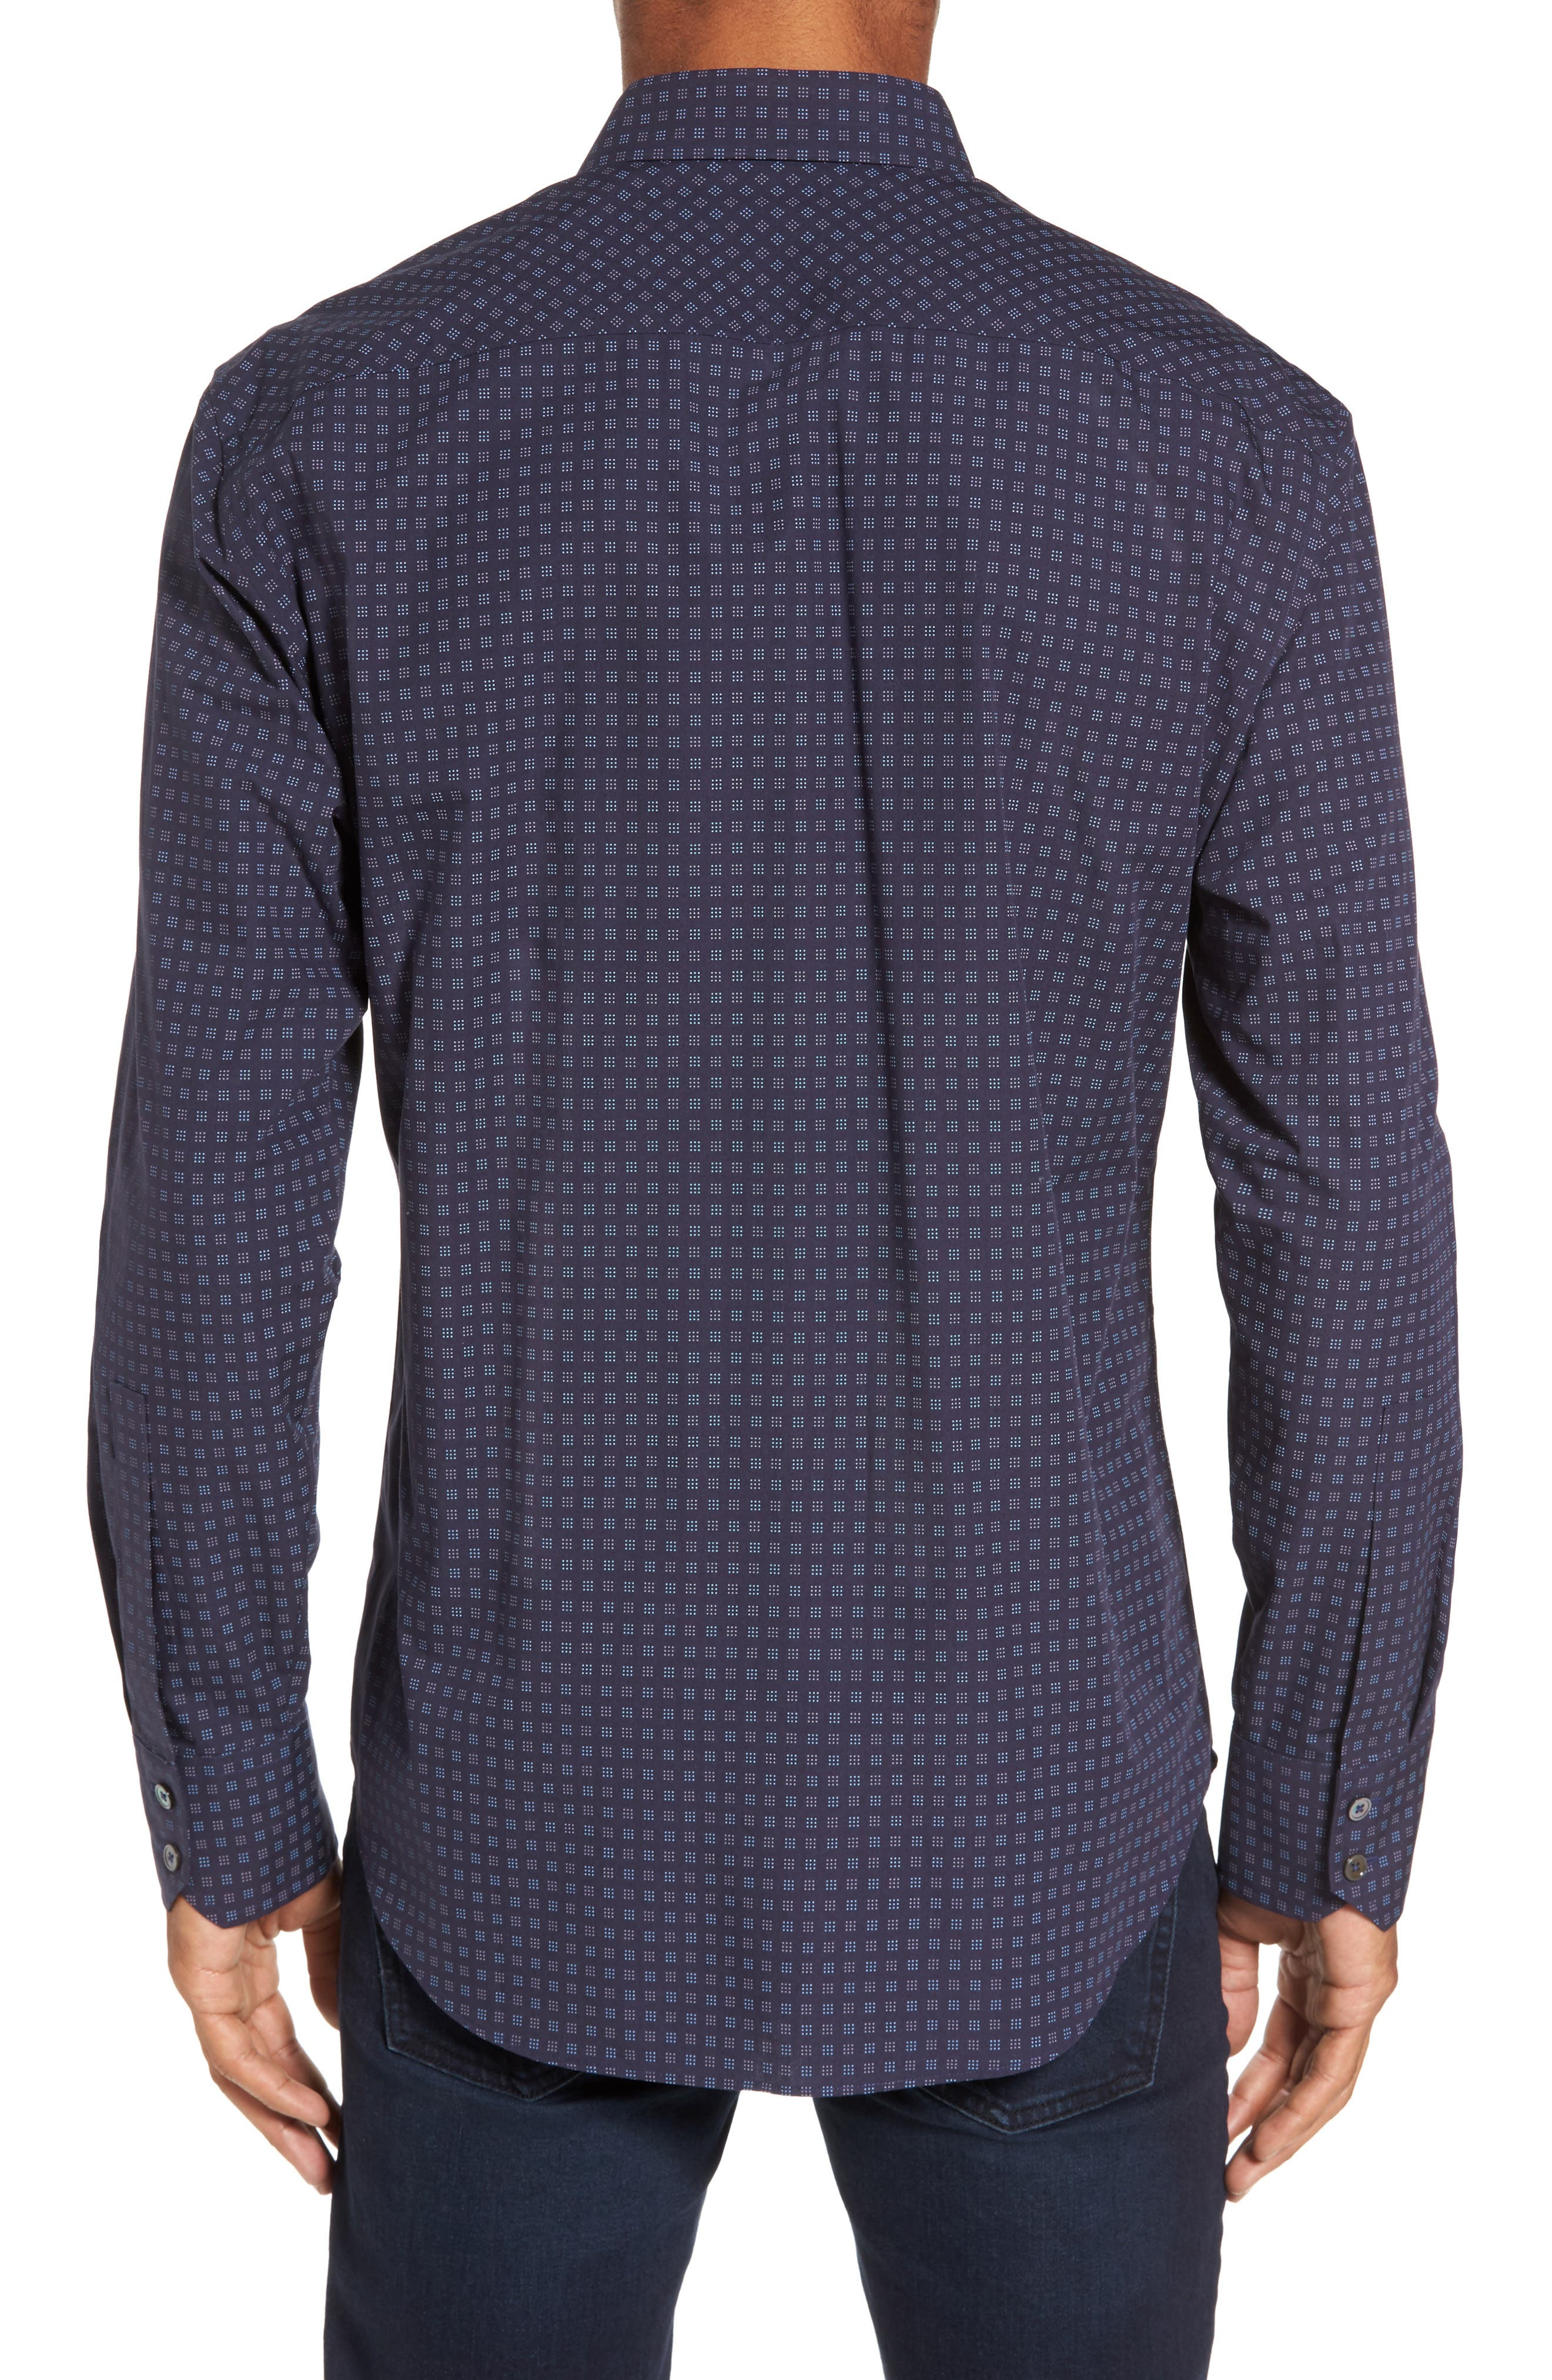 Alternate Image 2  - Zachary Prell Maison Slim Fit Print Sport Shirt